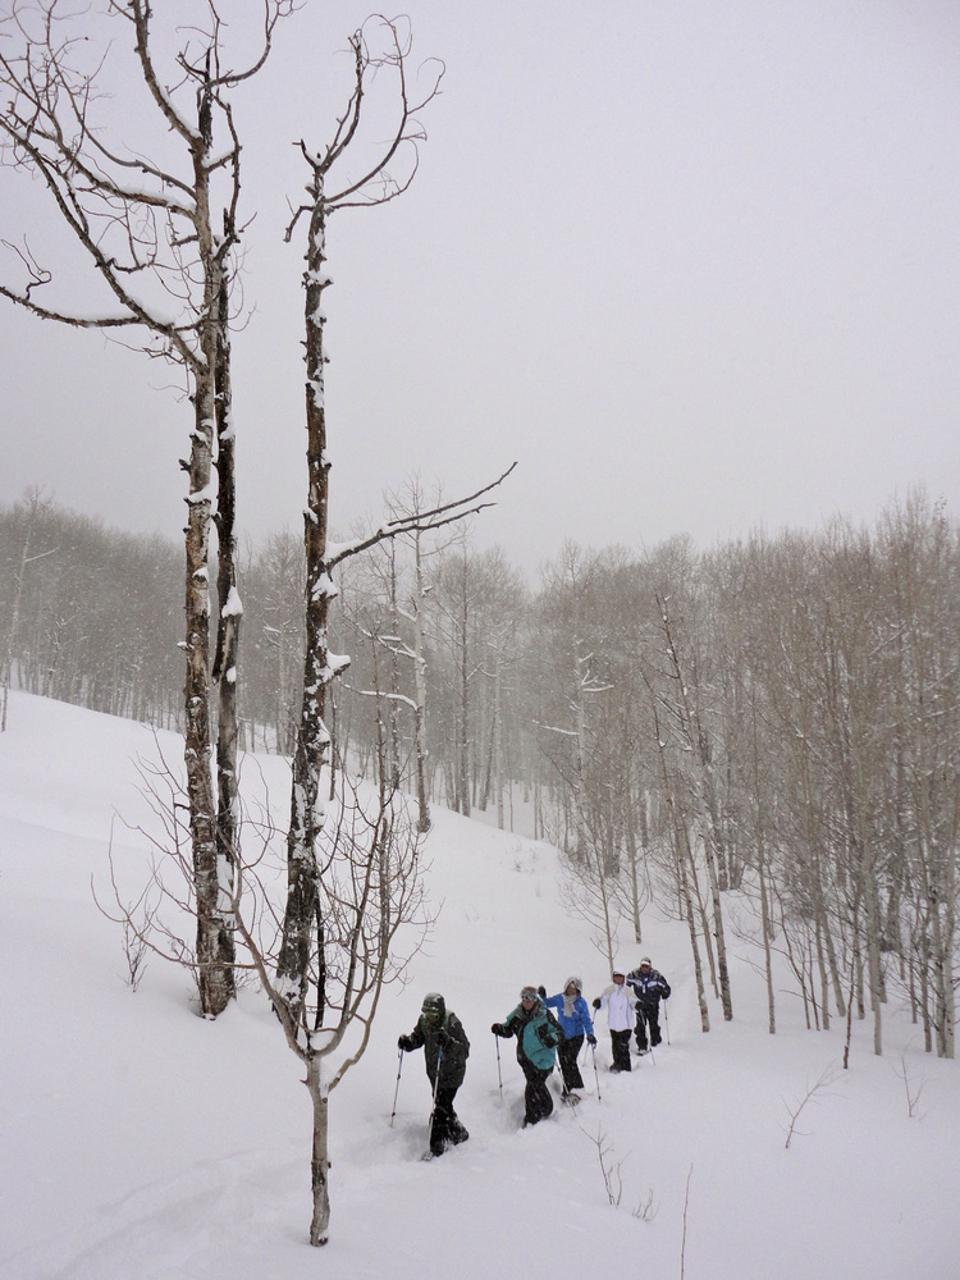 Trekking through snow-covered hills and trails in Aspen provides plenty of calming and scenic views.